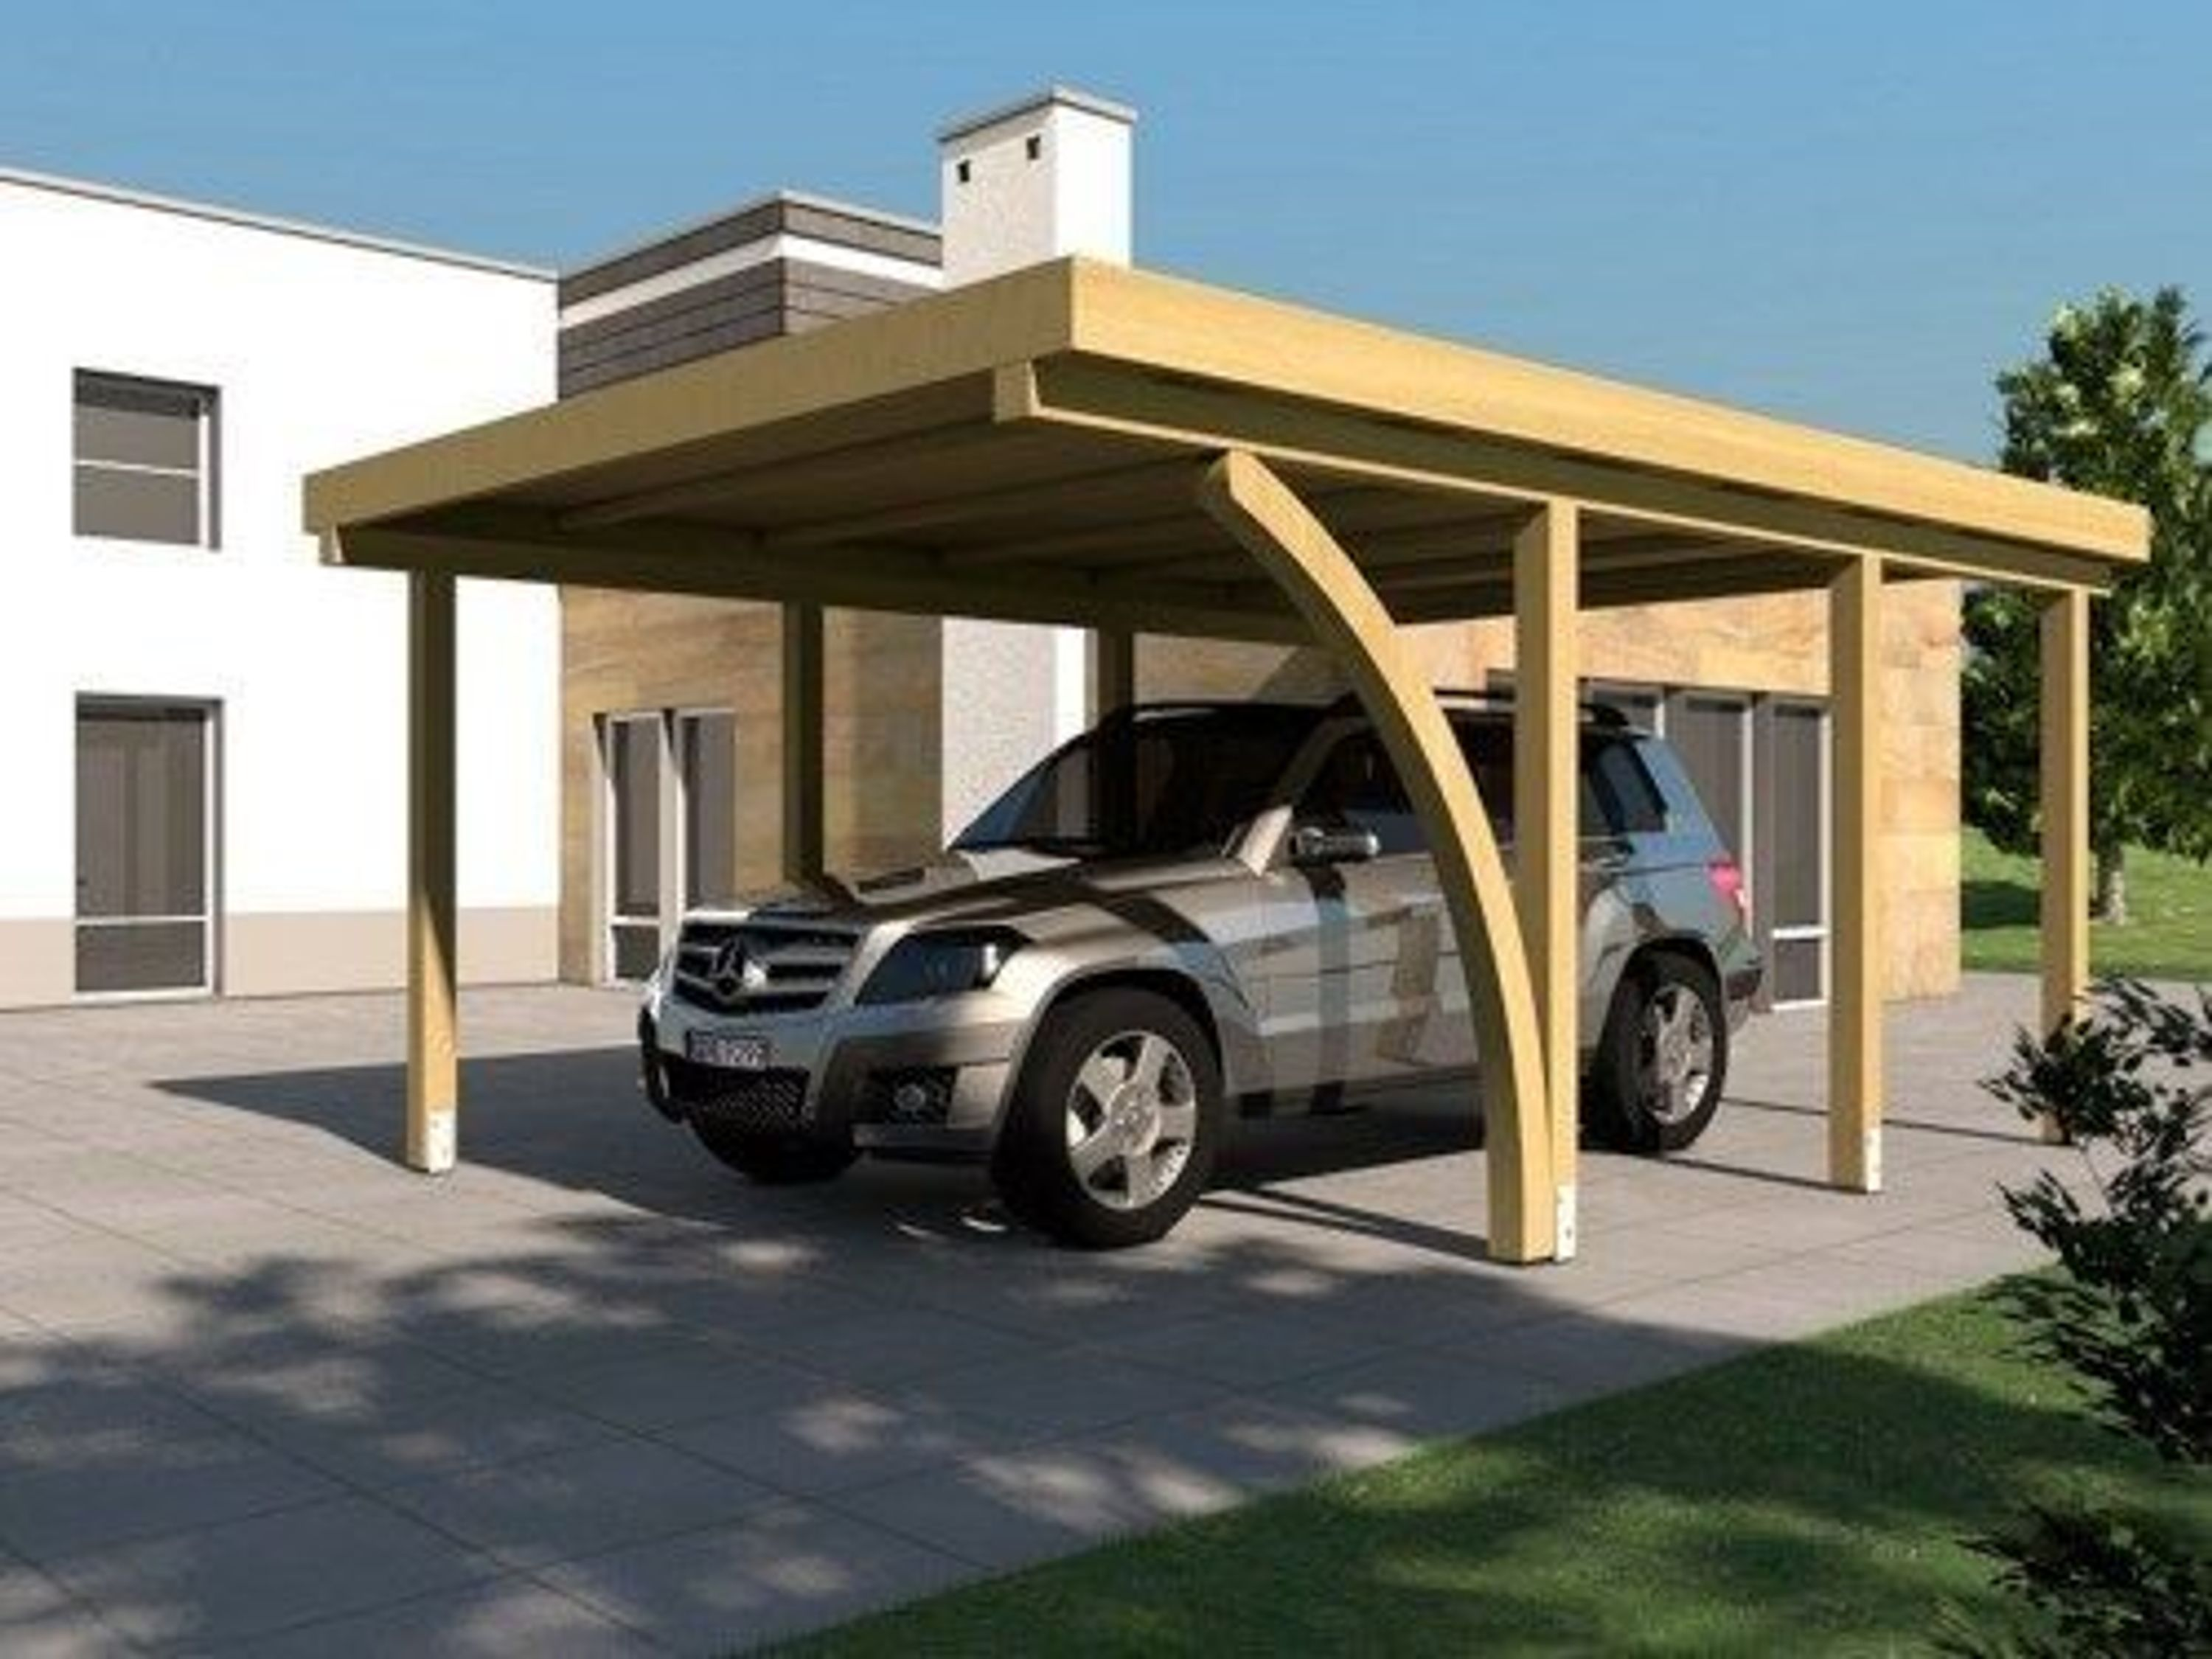 carport flachdach daytona i 400 x 600 cm mit leimholzbogen. Black Bedroom Furniture Sets. Home Design Ideas